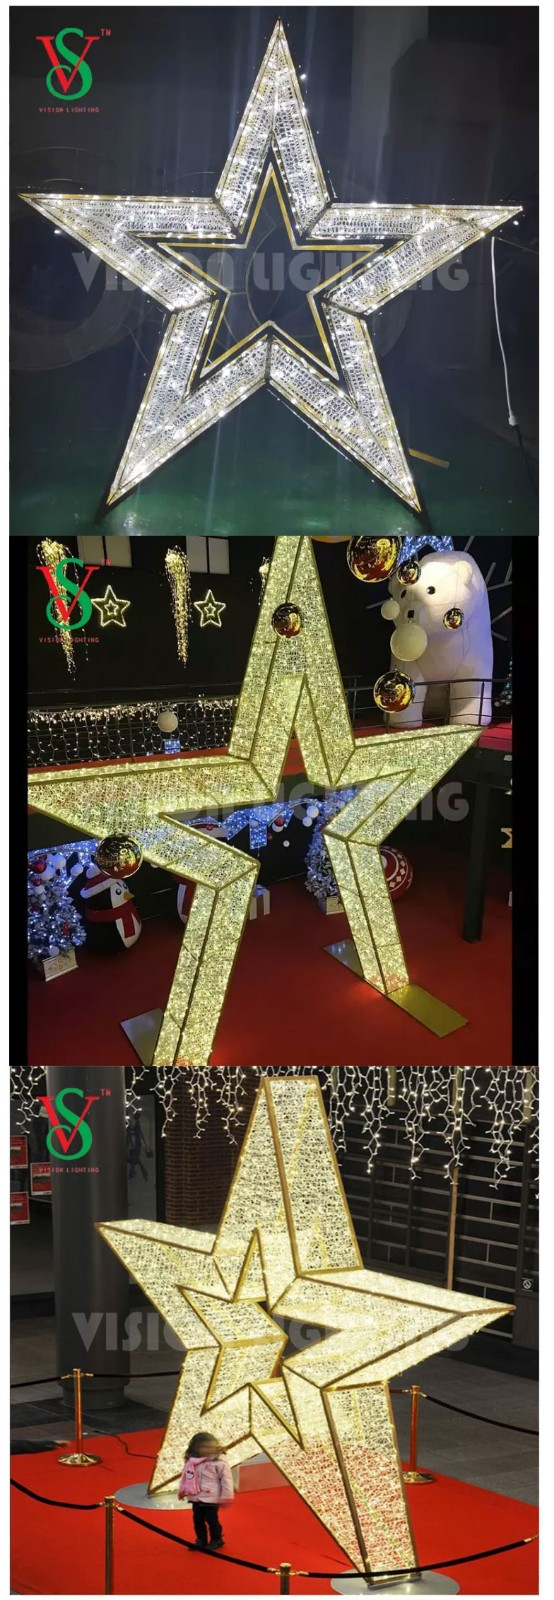 2D Christmas Giftbox Motif Lights for Shopping Mall Building Facade Decorations